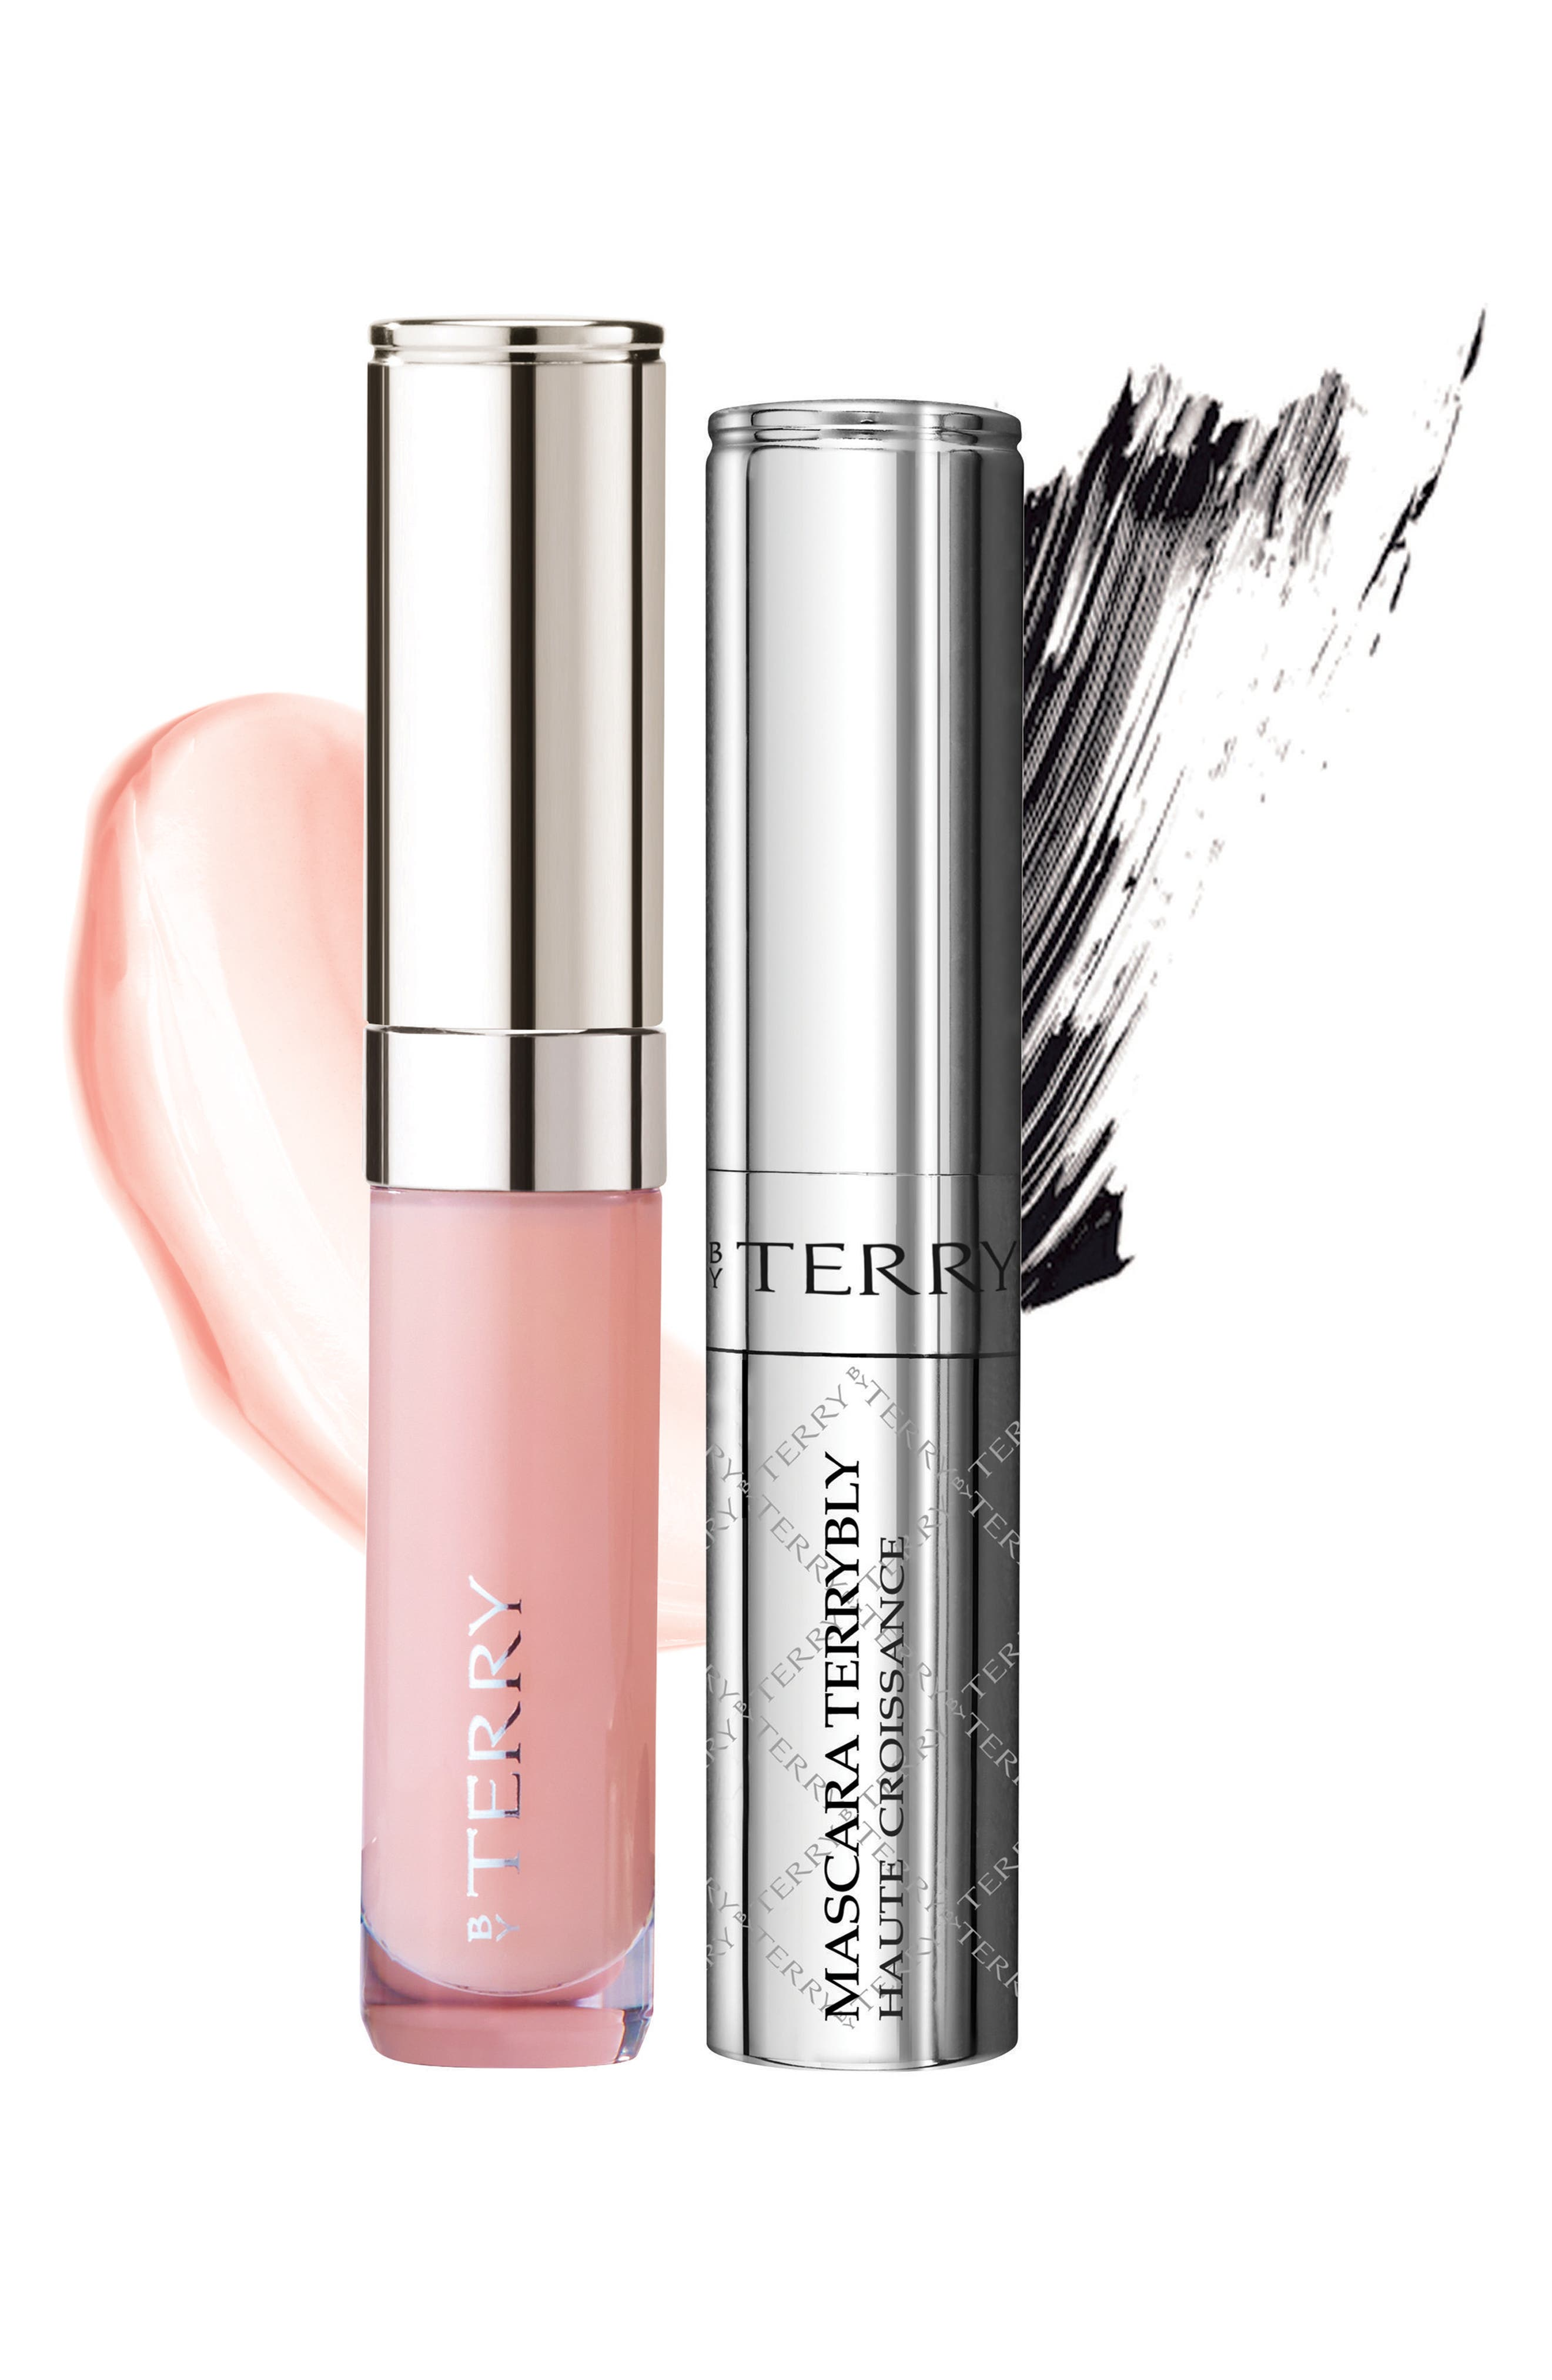 SPACE.NK.apothecary By Terry Lip & Lash Duo,                             Alternate thumbnail 2, color,                             No Color